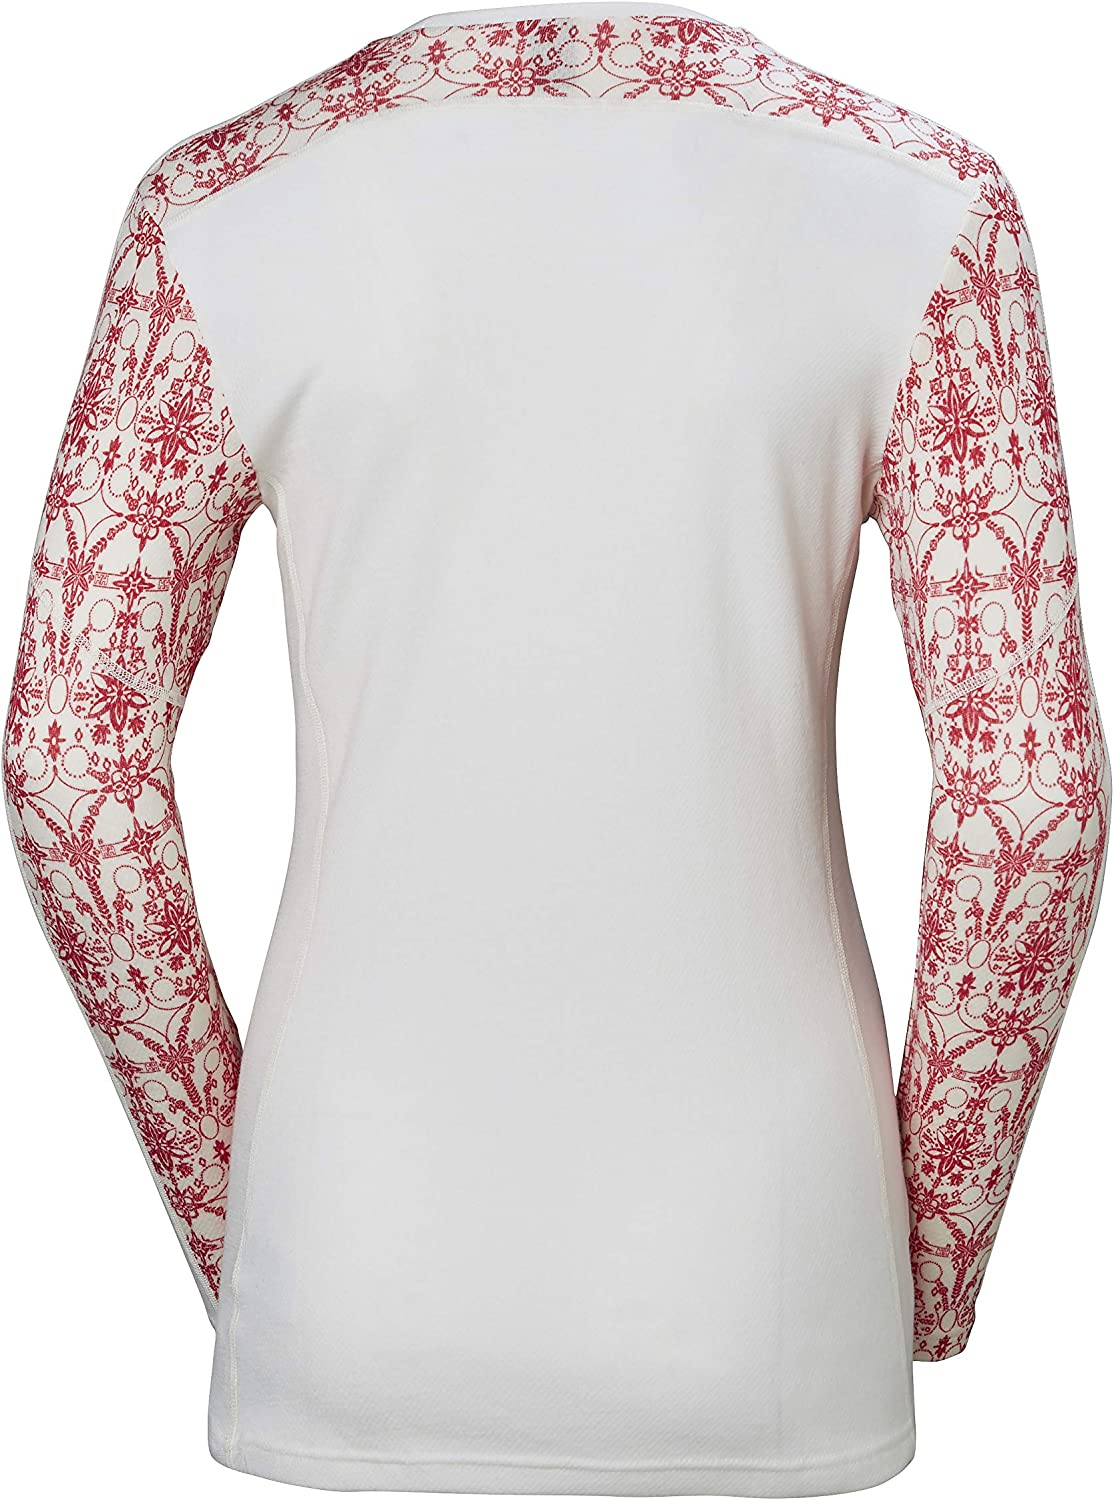 Helly-Hansen Womens Hh LIFA Merino Wool Graphic Print 2-Layer Crewneck Thermal Baselayer Top 110 Flag Red / Frost Print